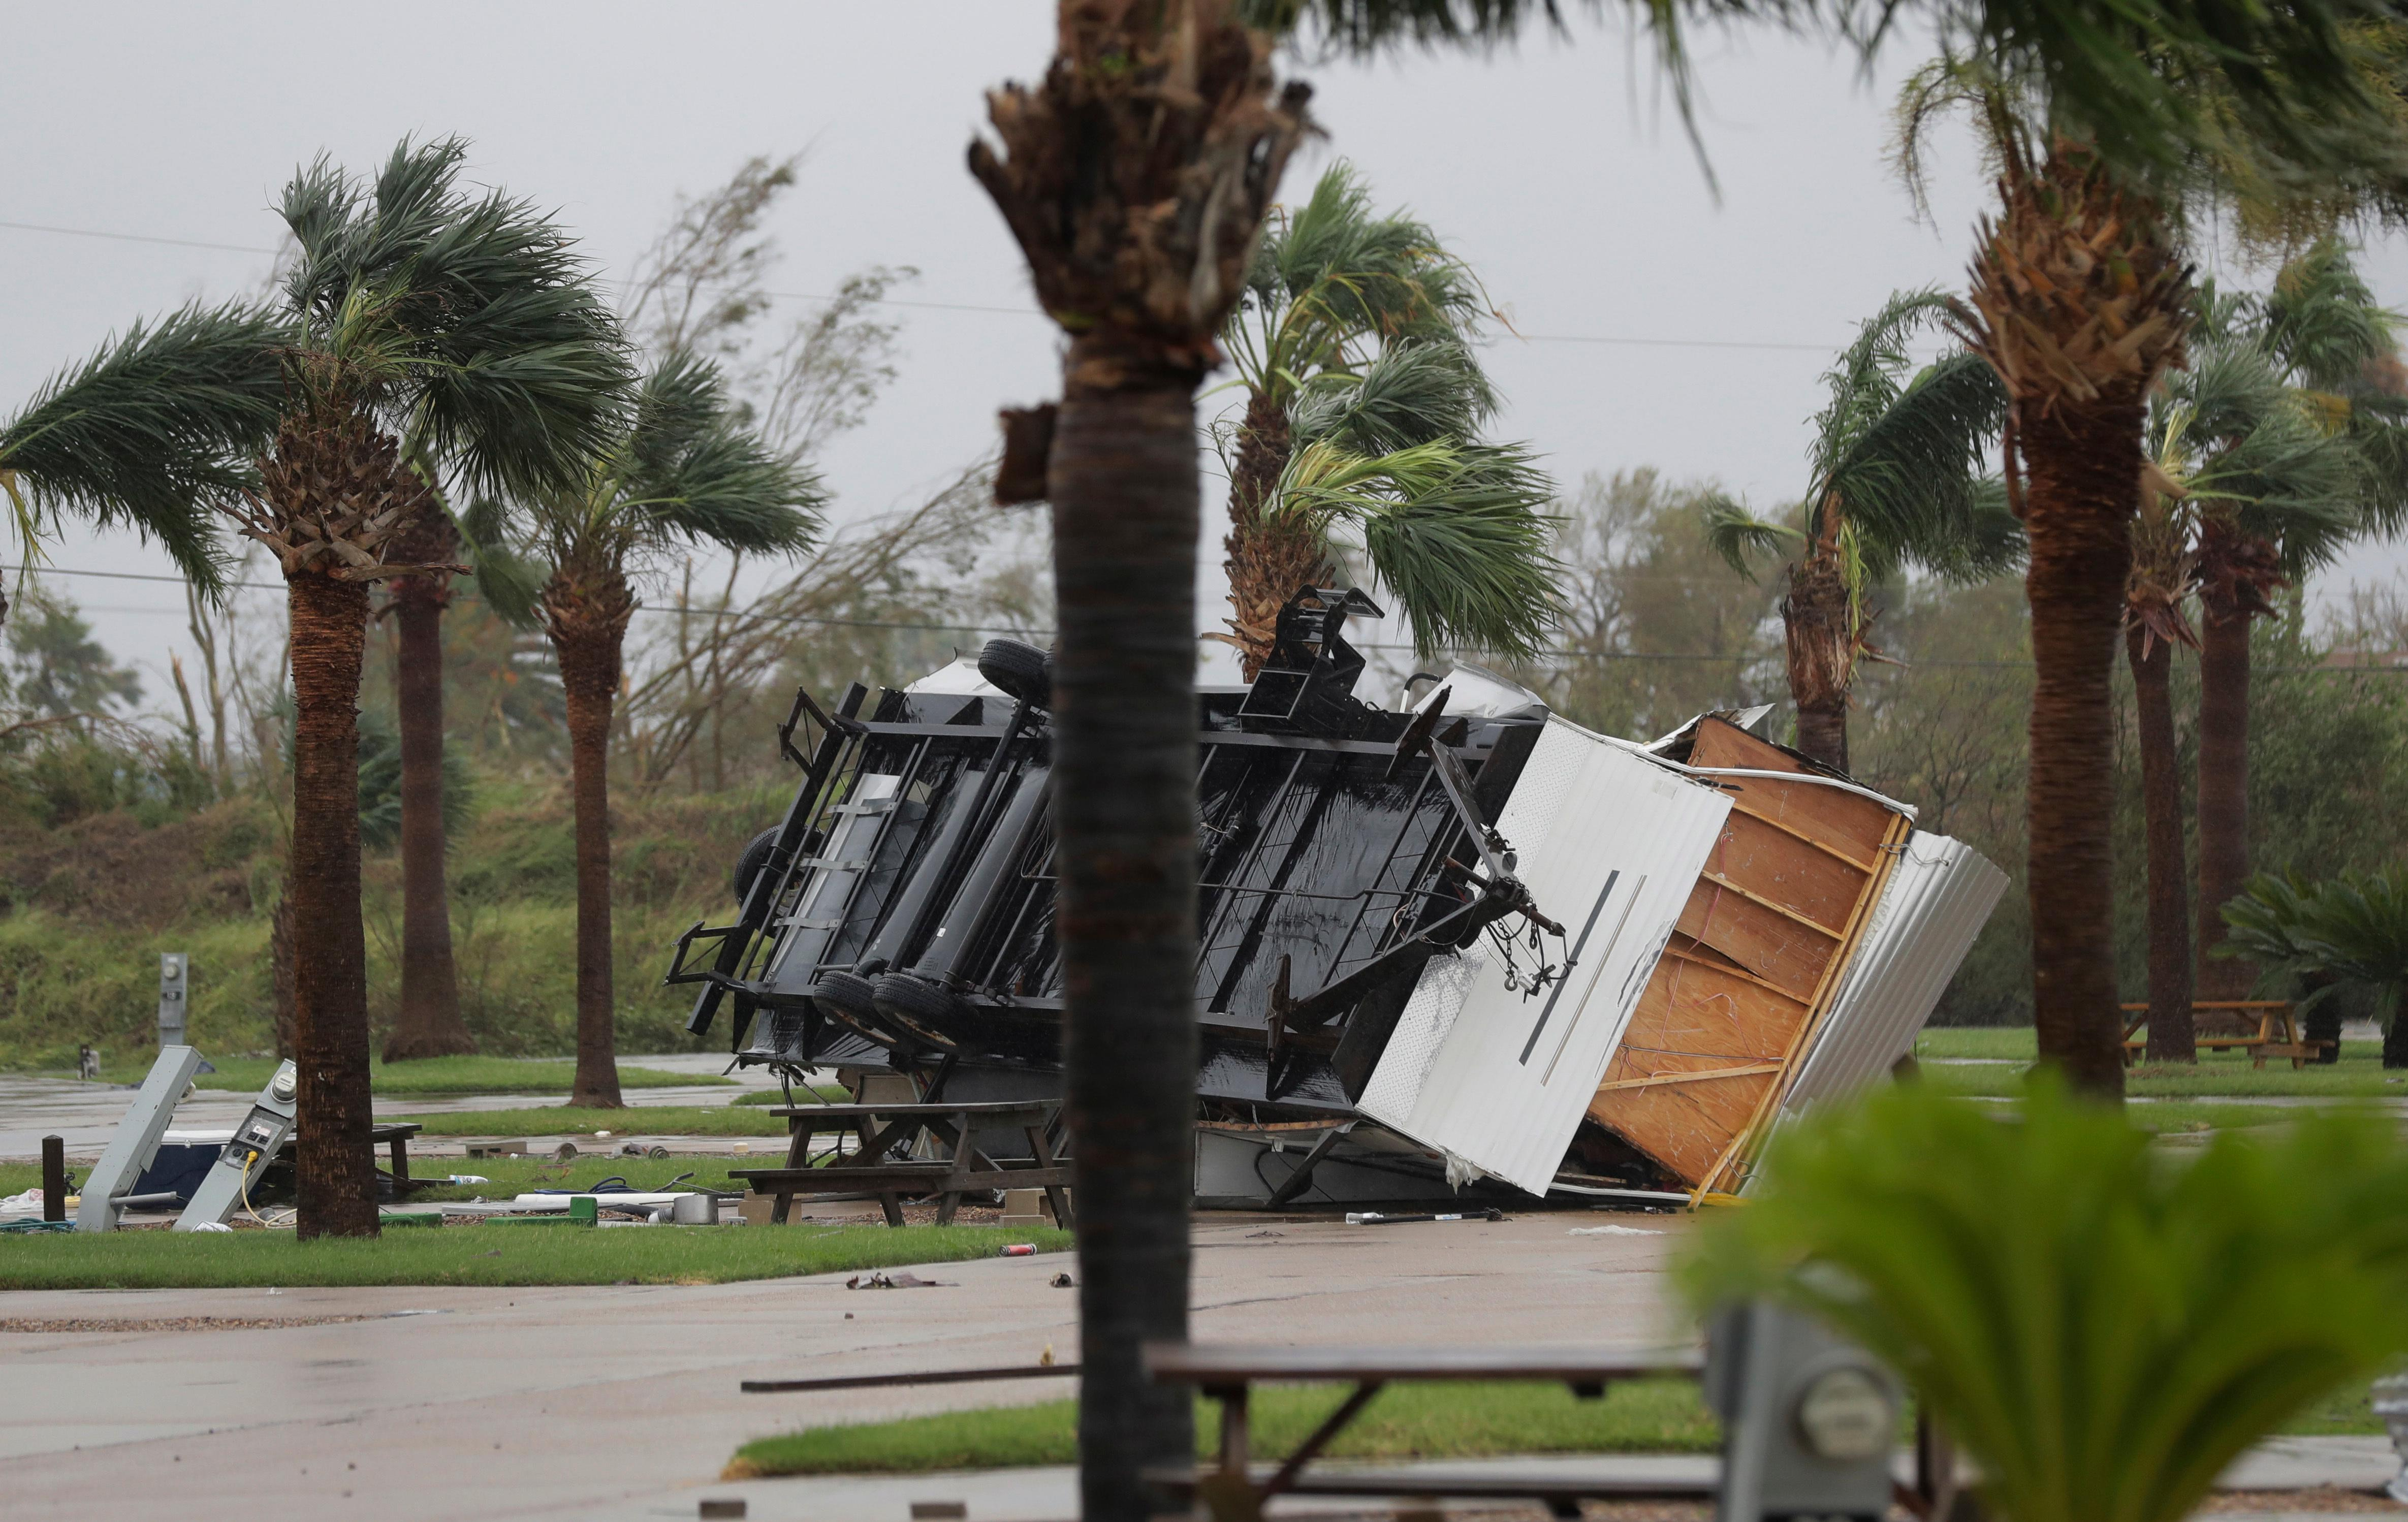 An overturned trailer sits in a park in the wake of Hurricane Harvey, Saturday, Aug. 26, 2017, in Aransas Pass, Texas.   Harvey rolled over the Texas Gulf Coast on Saturday, smashing homes and businesses and lashing the shore with wind and rain so intense that drivers were forced off the road because they could not see in front of them. (AP Photo/Eric Gay)